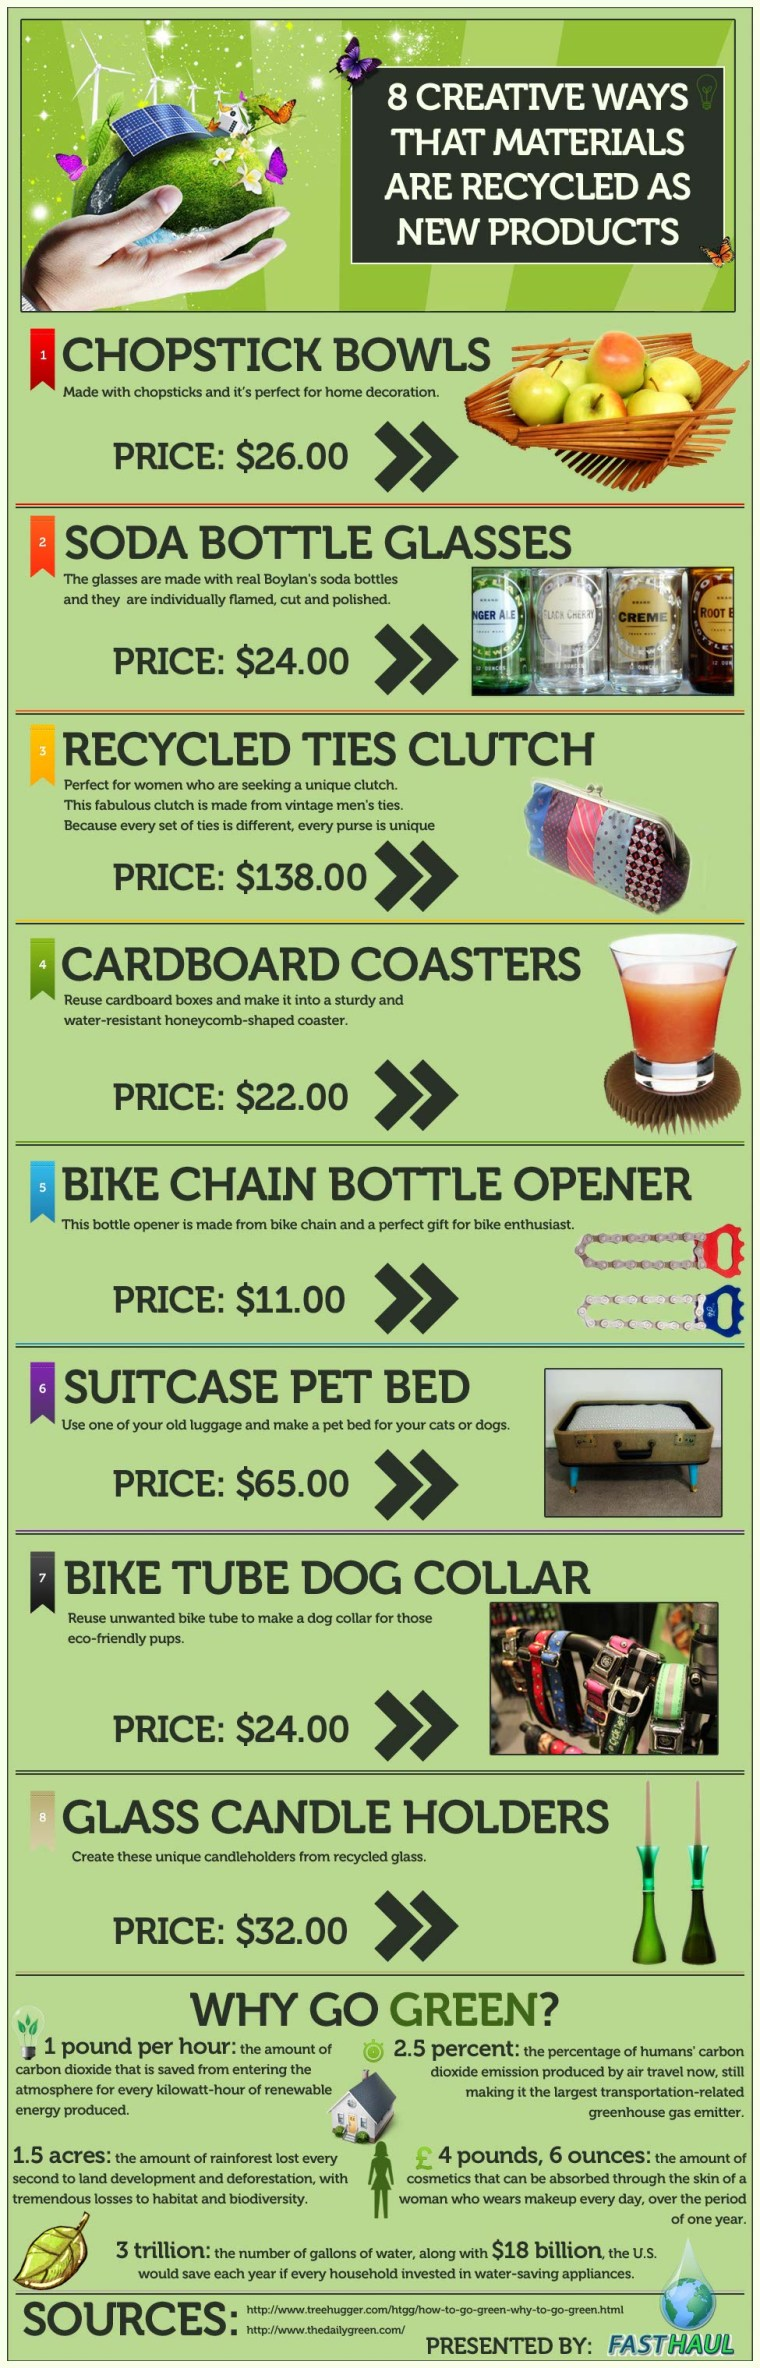 Creative ways Materials are Upcycled [Infographic] | ecogreenlove